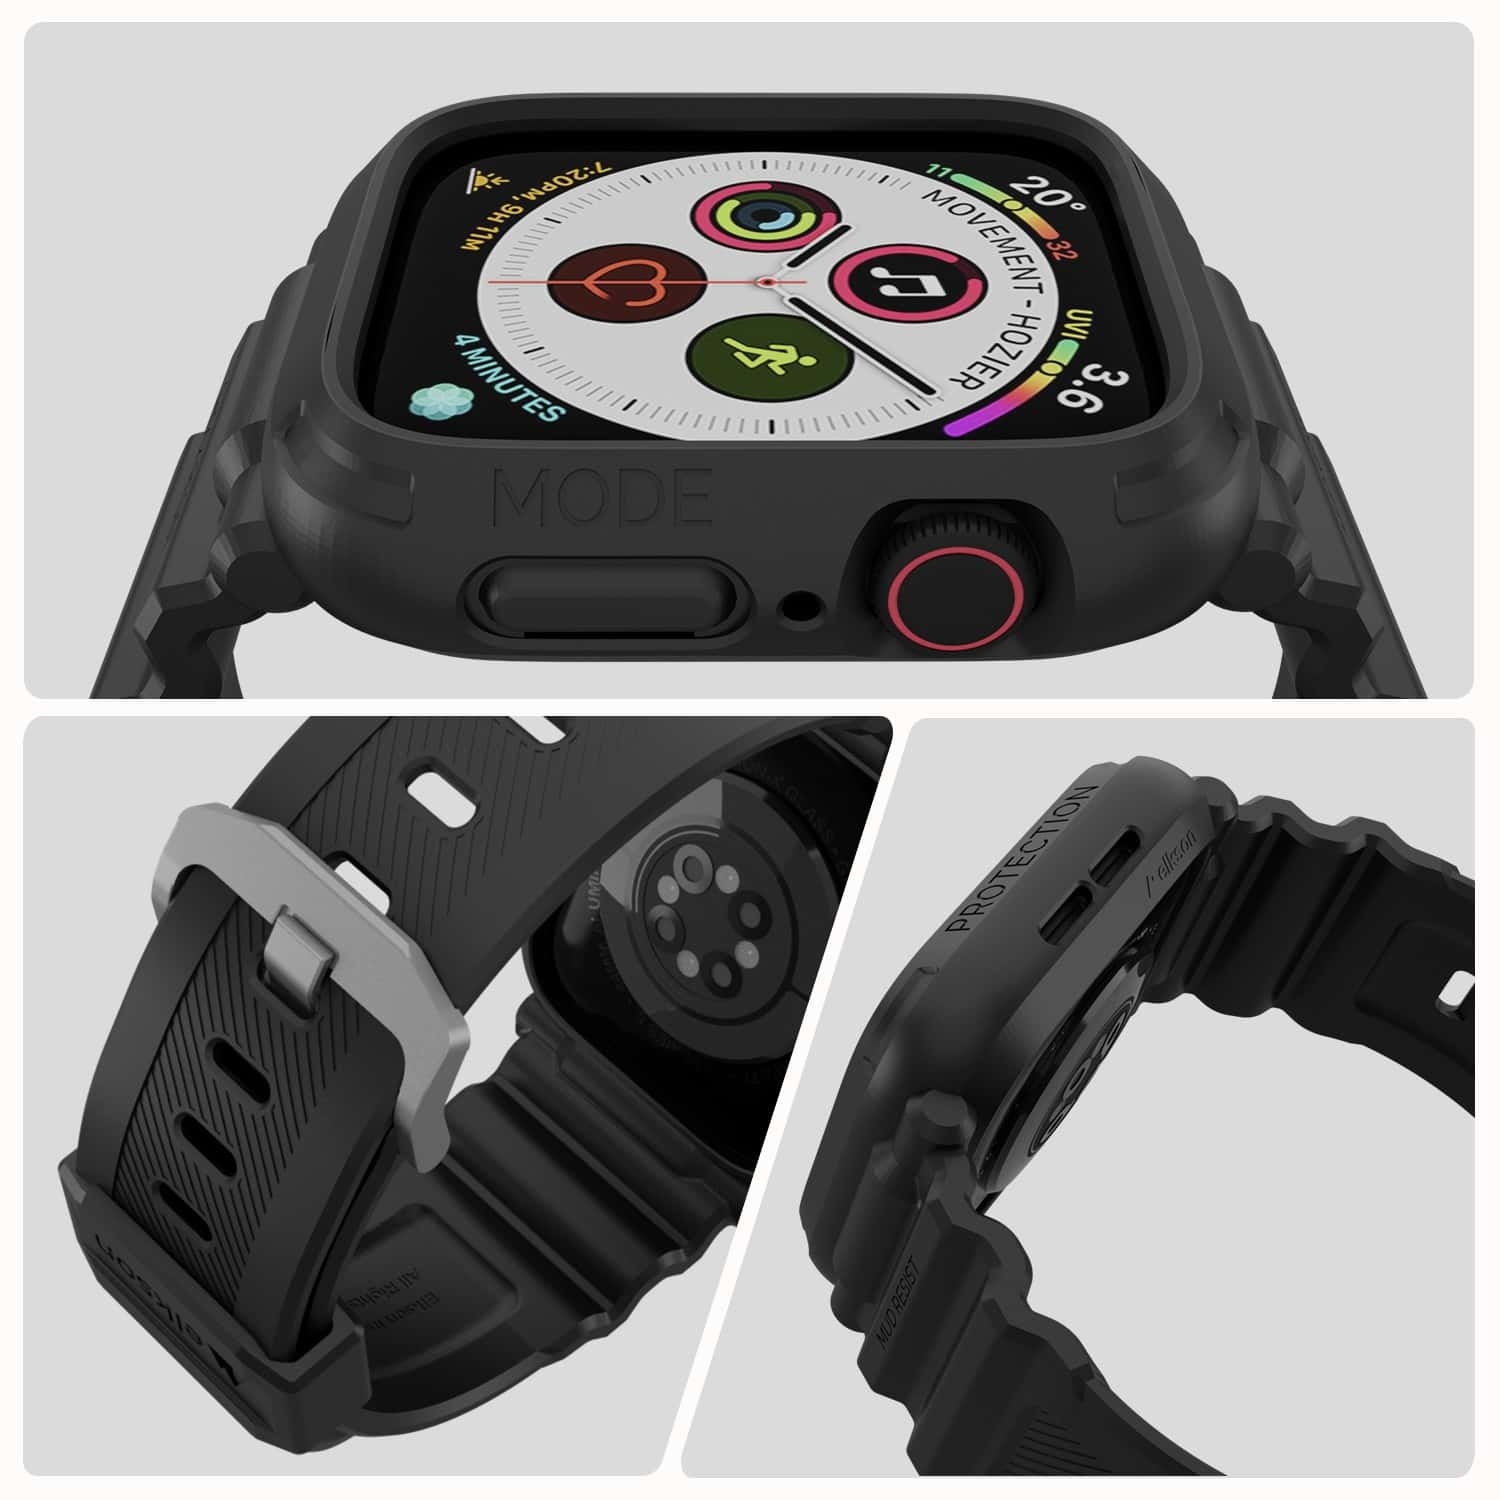 The Elkson Quattro Pro bumper case with band is an inexpensive way to protect your Apple Watch